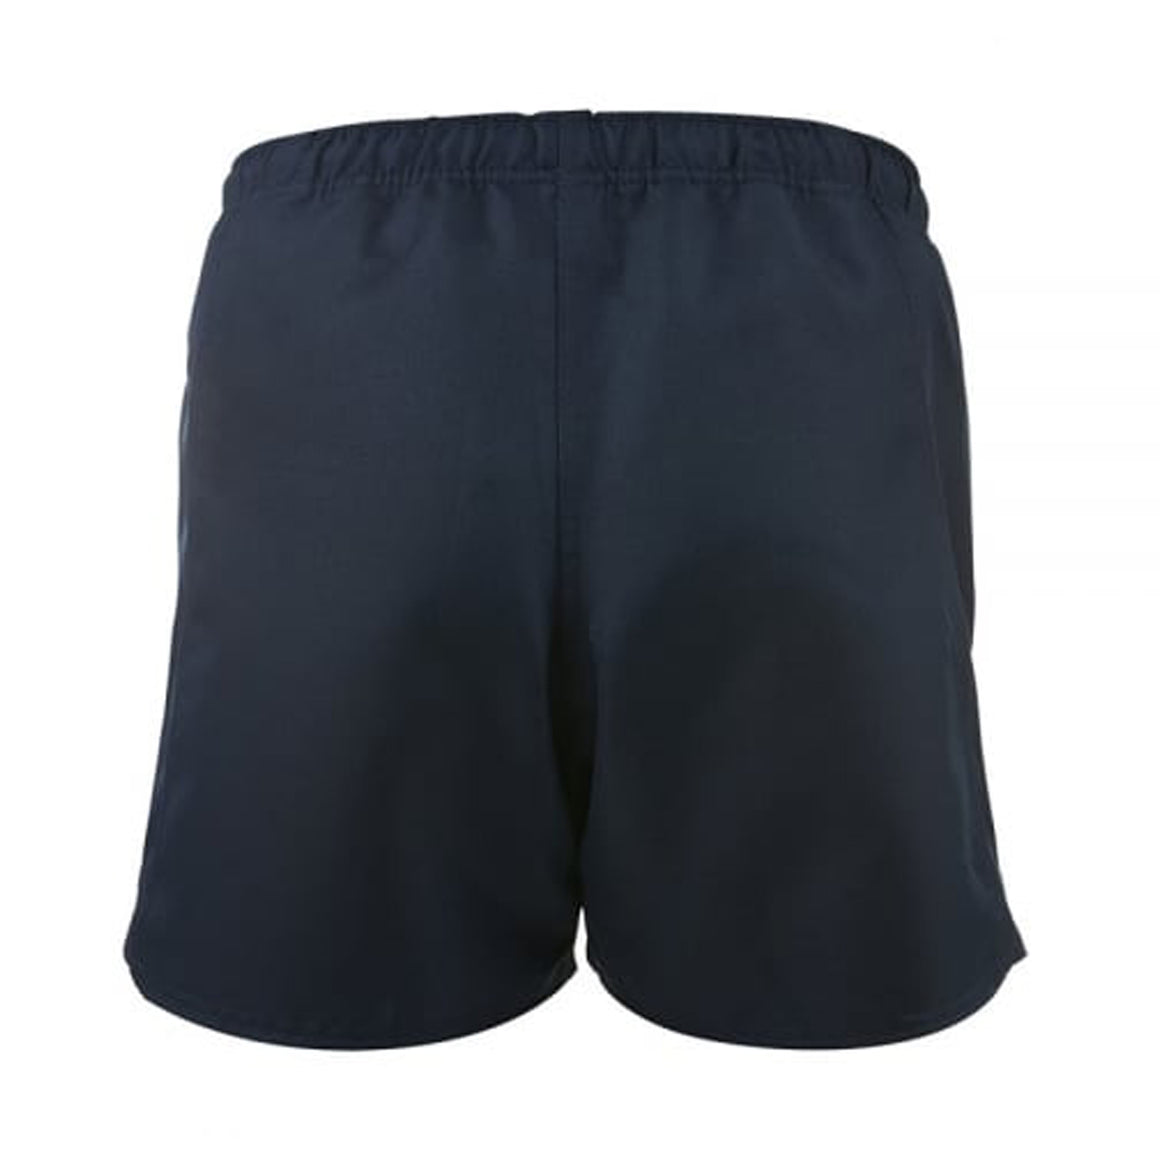 Advantage Shorts for Men in Navy